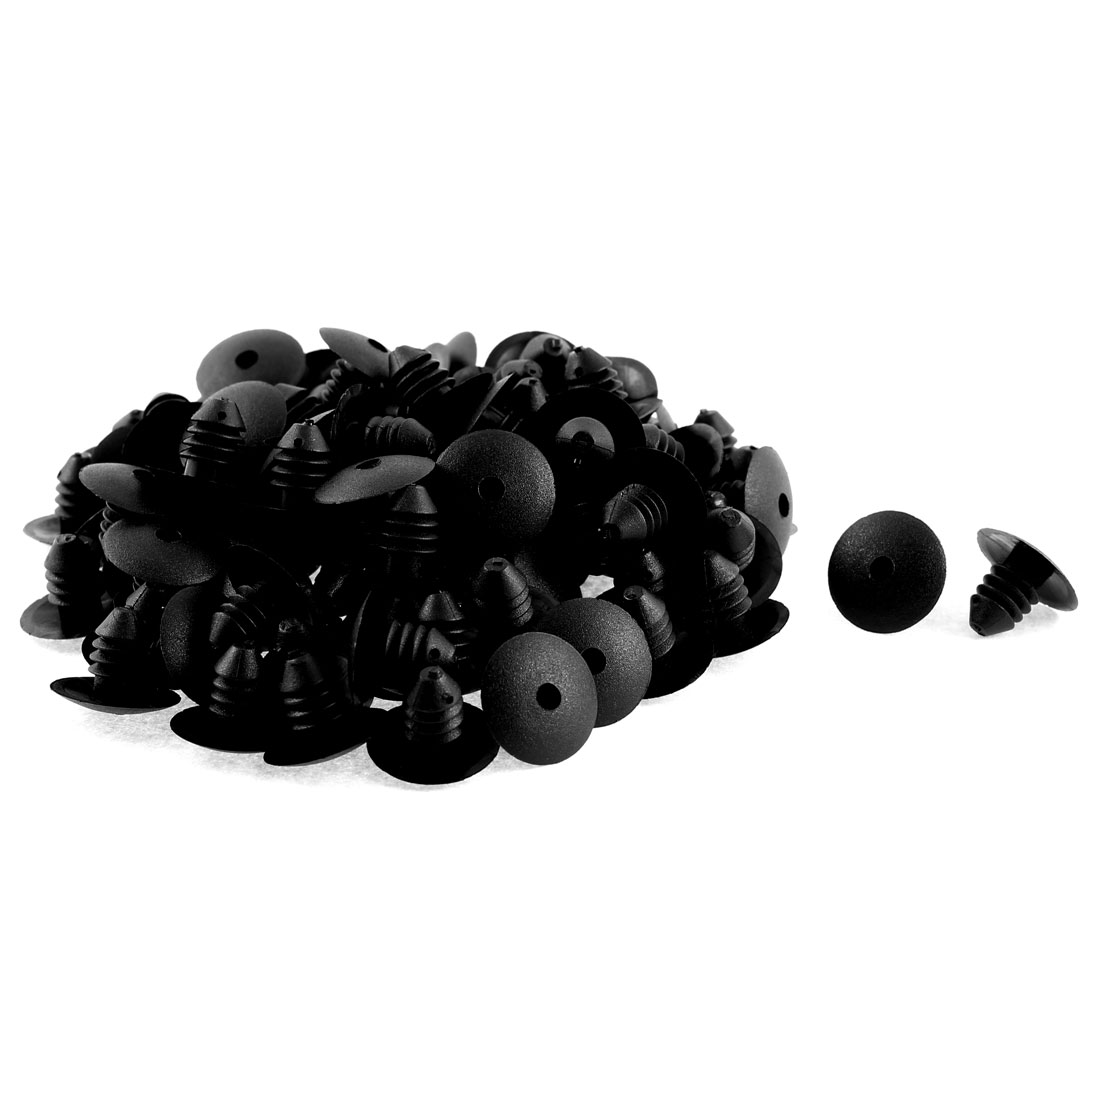 100 Pcs Black Plastic Rivet Carpet Floor Retainer Clips for Volkswagen Passat